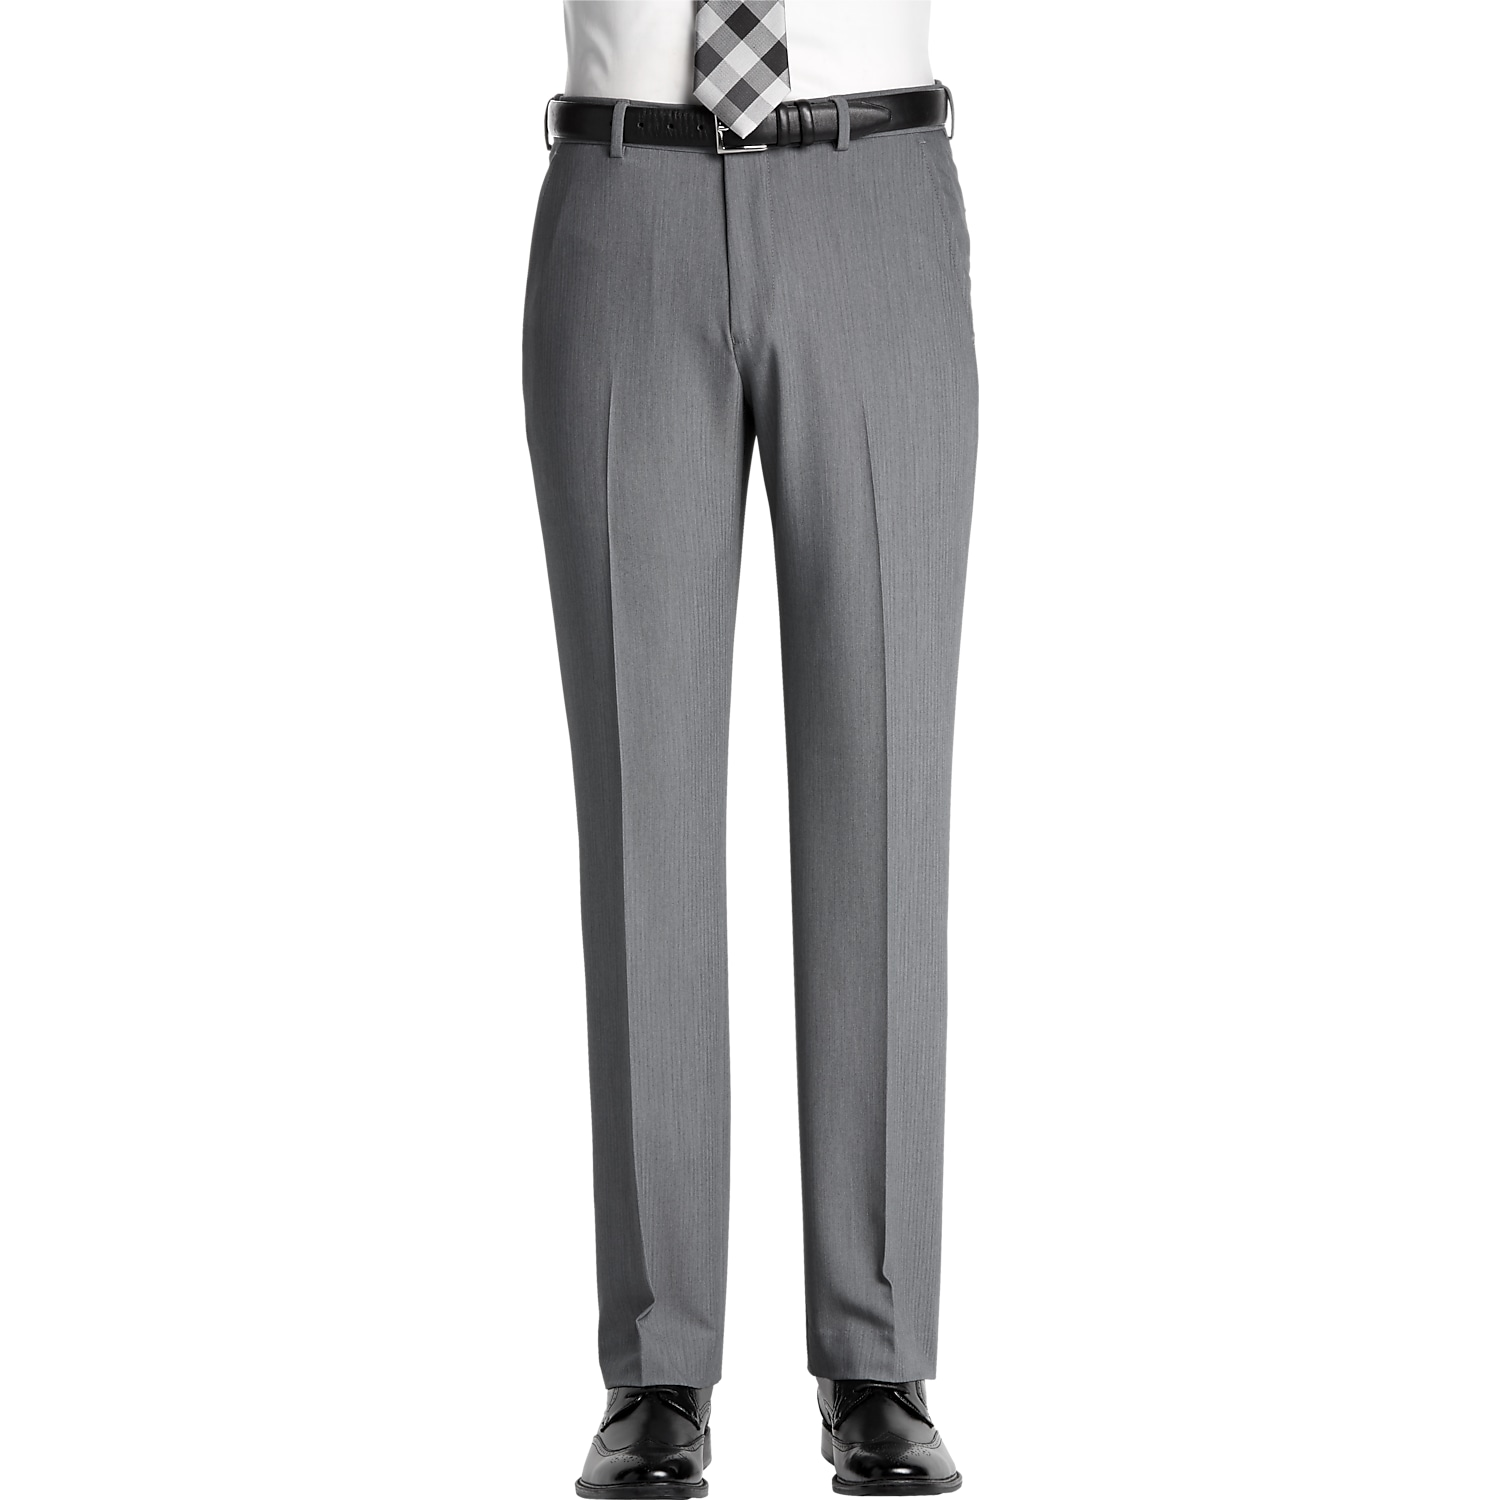 Bithermic® grey dress pant in thermoregulating fabric, stretch band waist charcoal grey dress pants by Gala Slacks. Bithermic® fabric is made by a special technology that was first used by NASA in order to keep the astronauts cool when its hot & warm when its cold.